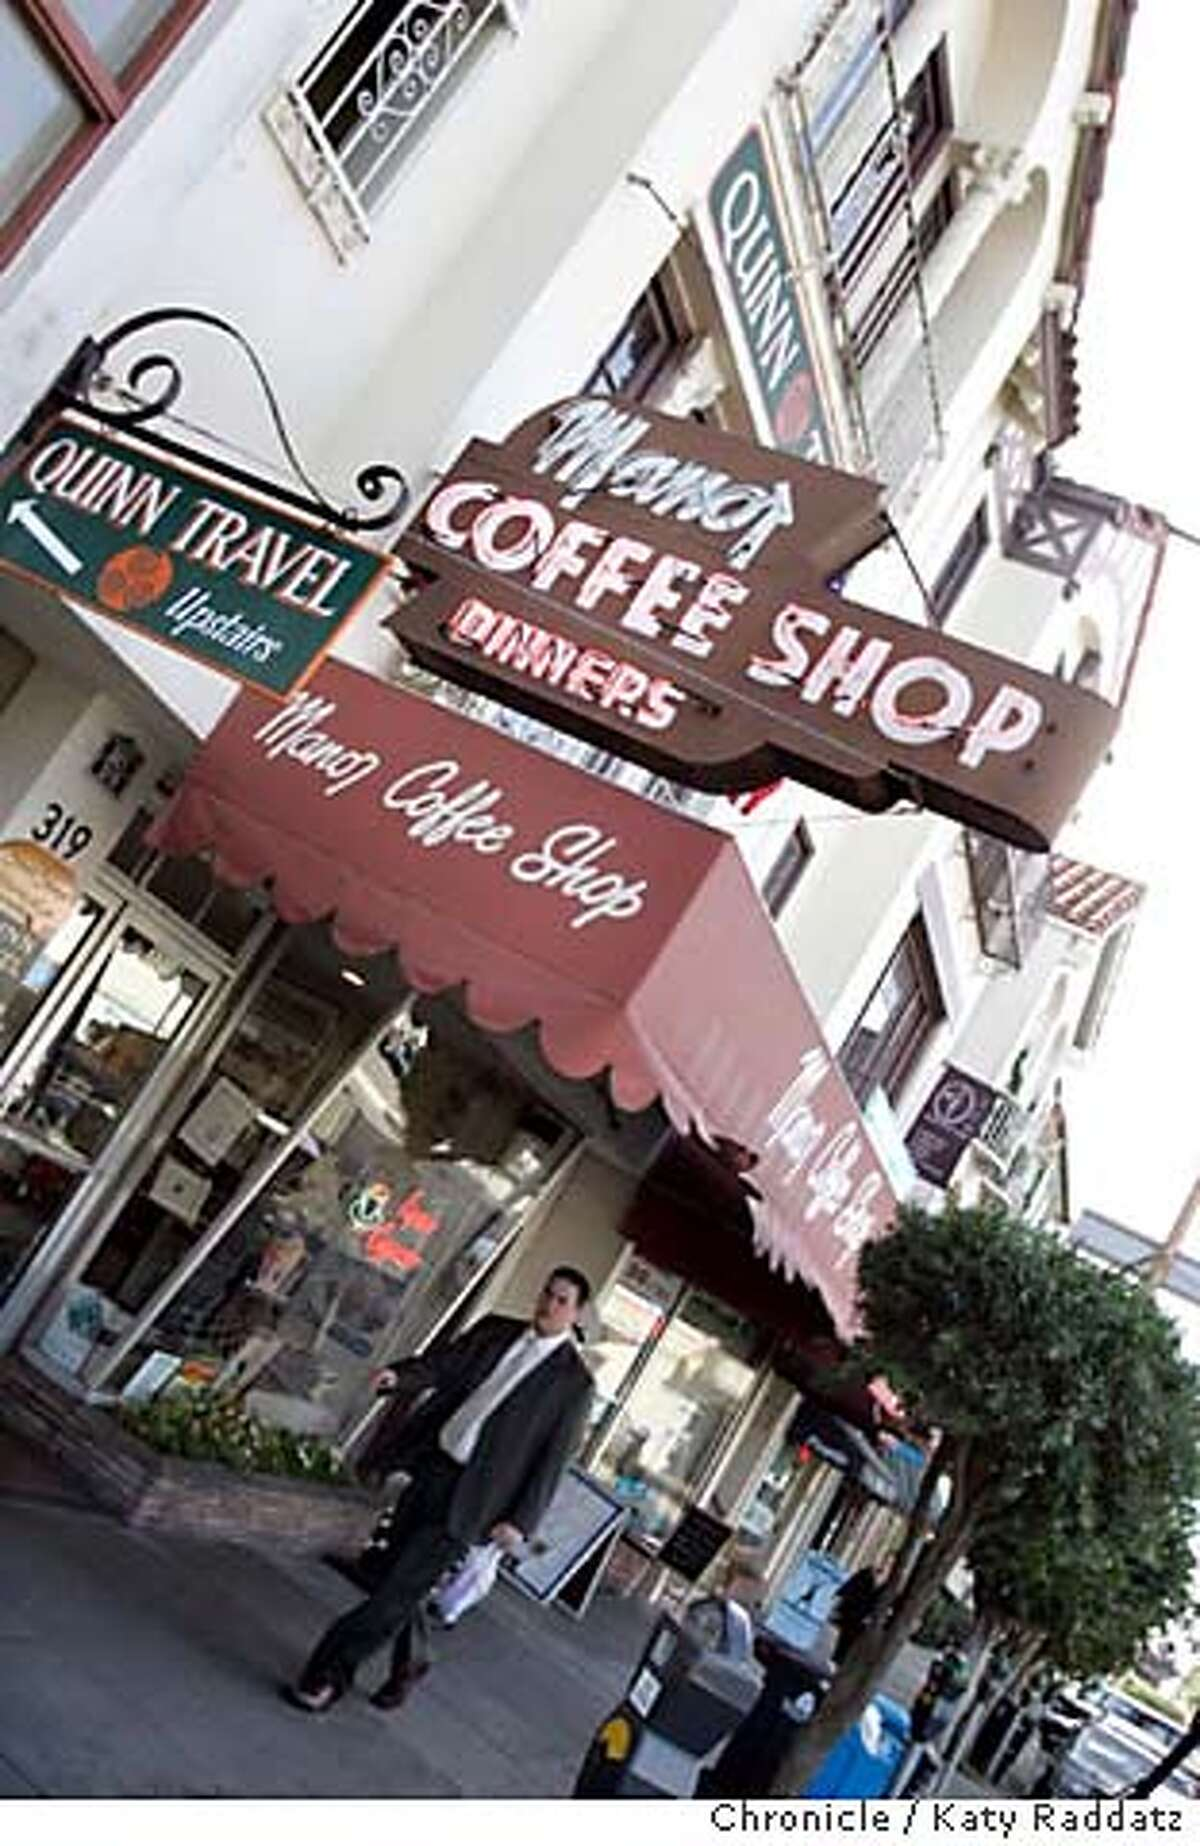 .jpg SHOWN: The Manor Coffee Shop sign with the West Portal neighborhood. Story is about recapturing the taste memories of childhood. These photos were made on Wednesday, Jan. 10, 2007, in San Francisco, CA. (Katy Raddatz/SF Chronicle) Mandatory credit for the photographer and the San Francisco Chronicle. ; mags out.